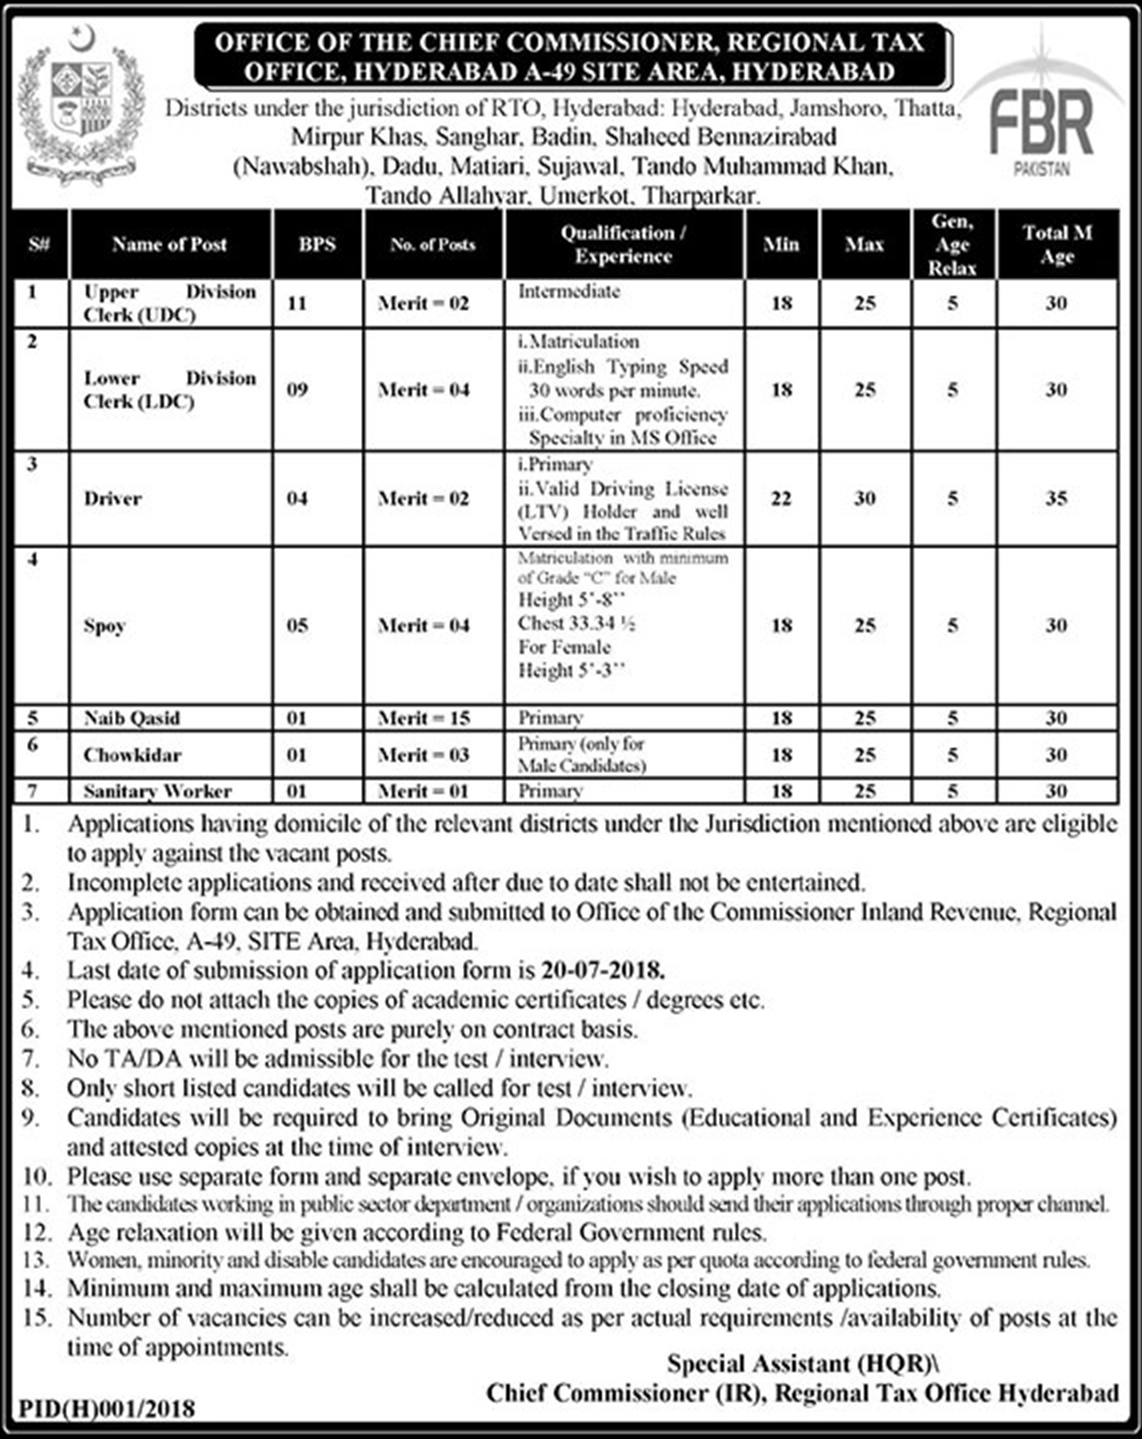 Jobs In Office Of The Chief Commissioner Regional Tax Office [ FBR ] July 2018